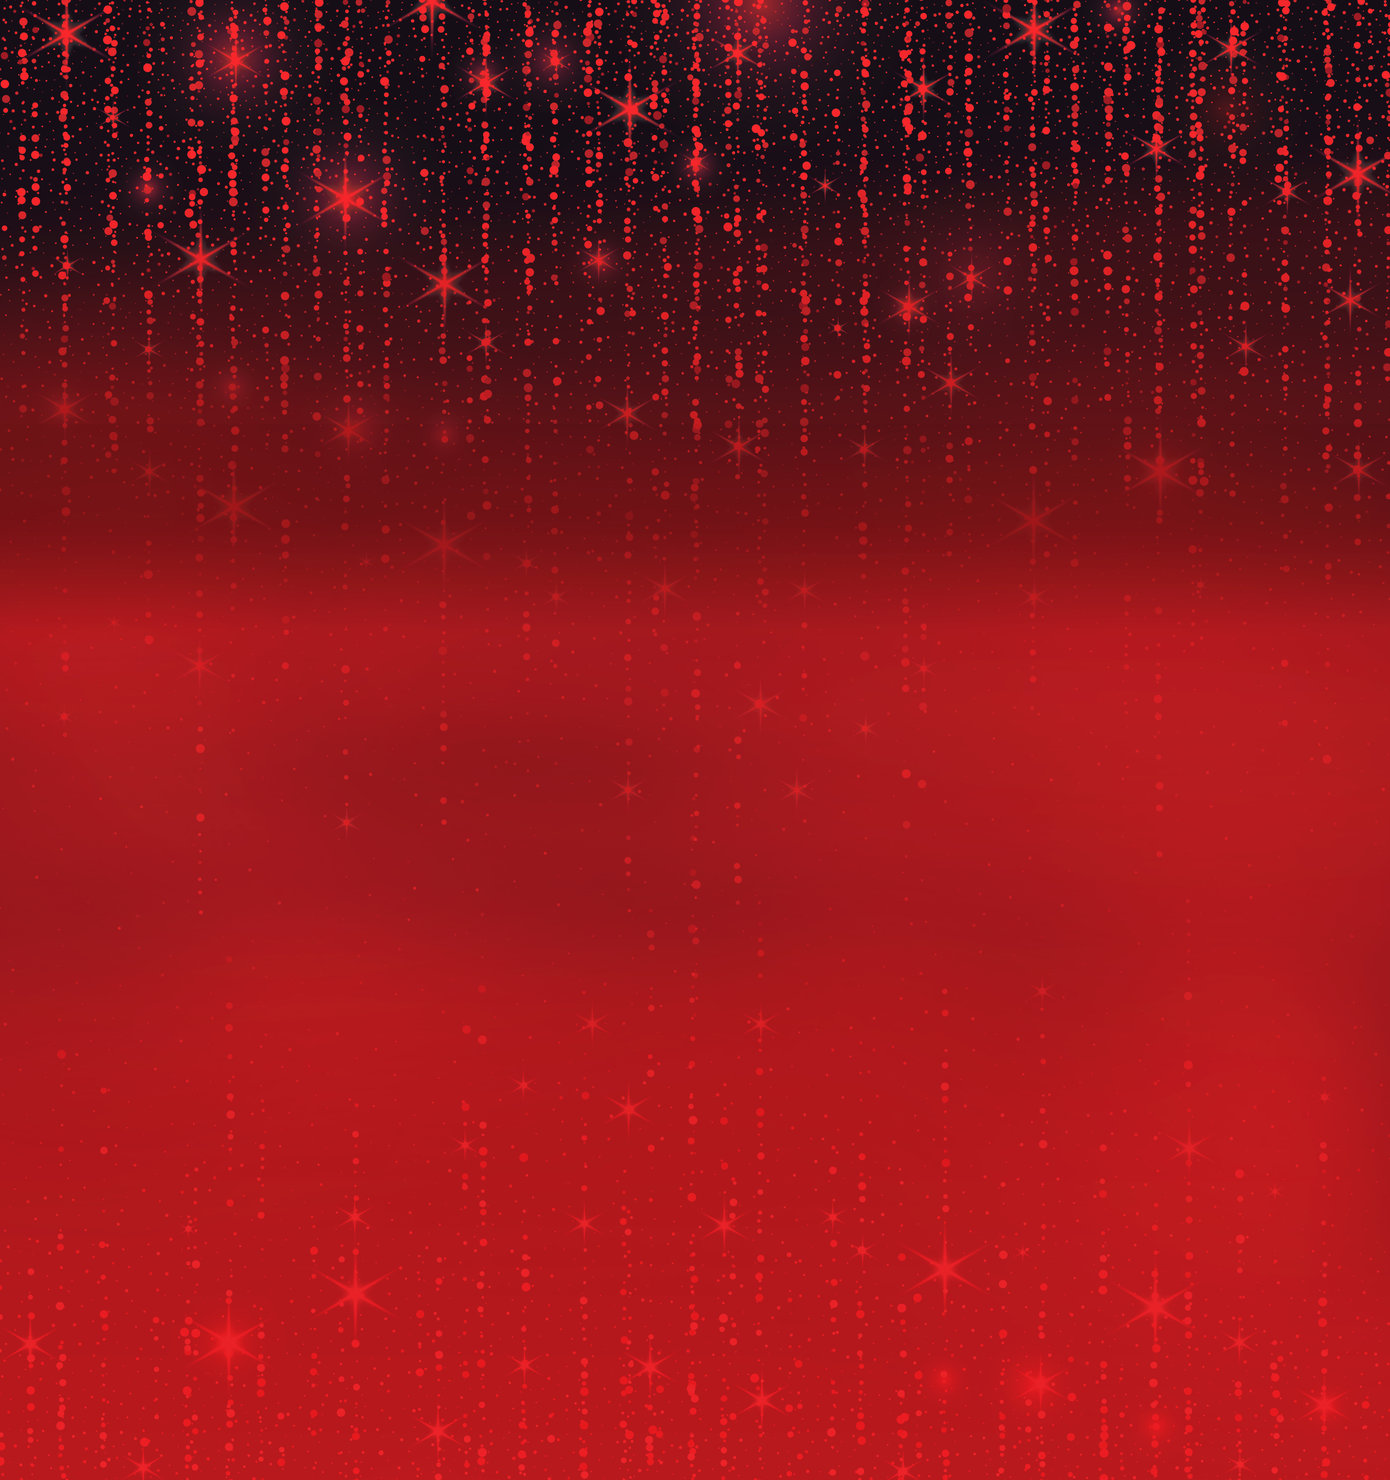 Red background with dark to light gradient and sparkles